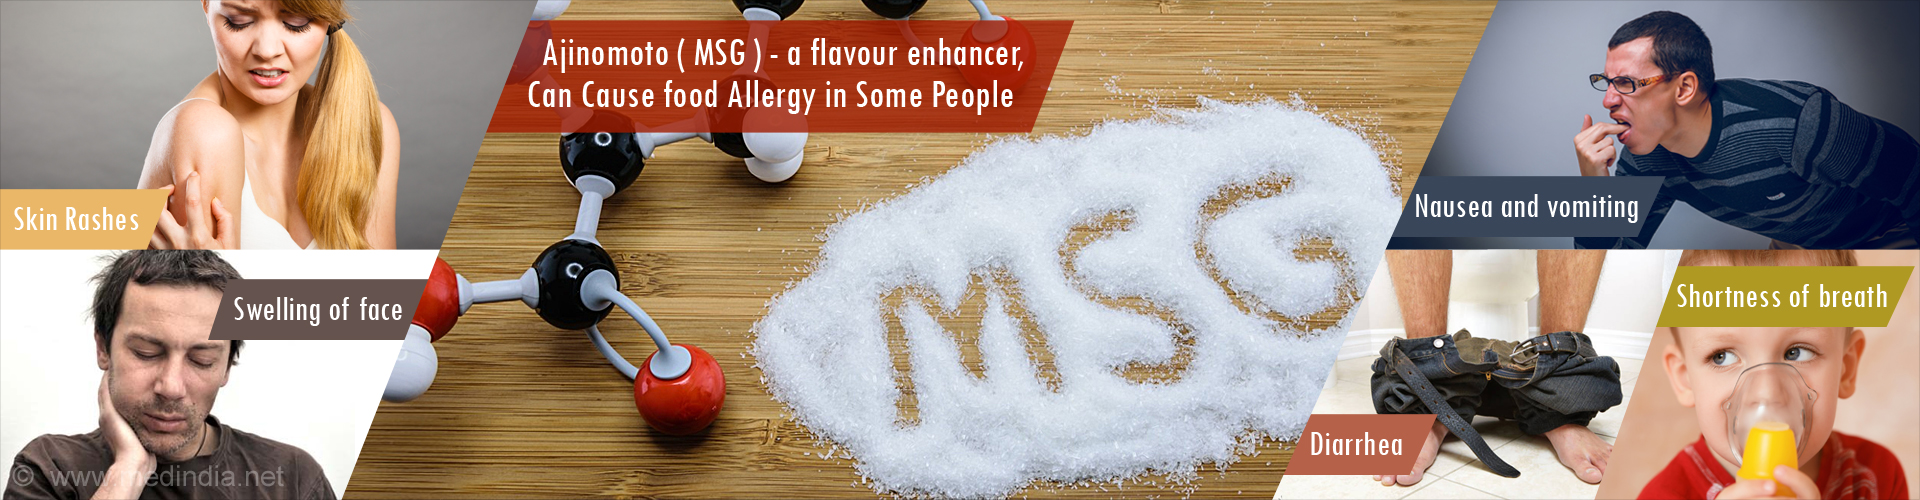 Ajinomoto ( MSG ) - a flavour enhancer,  Can Cause food Allergy in Some People